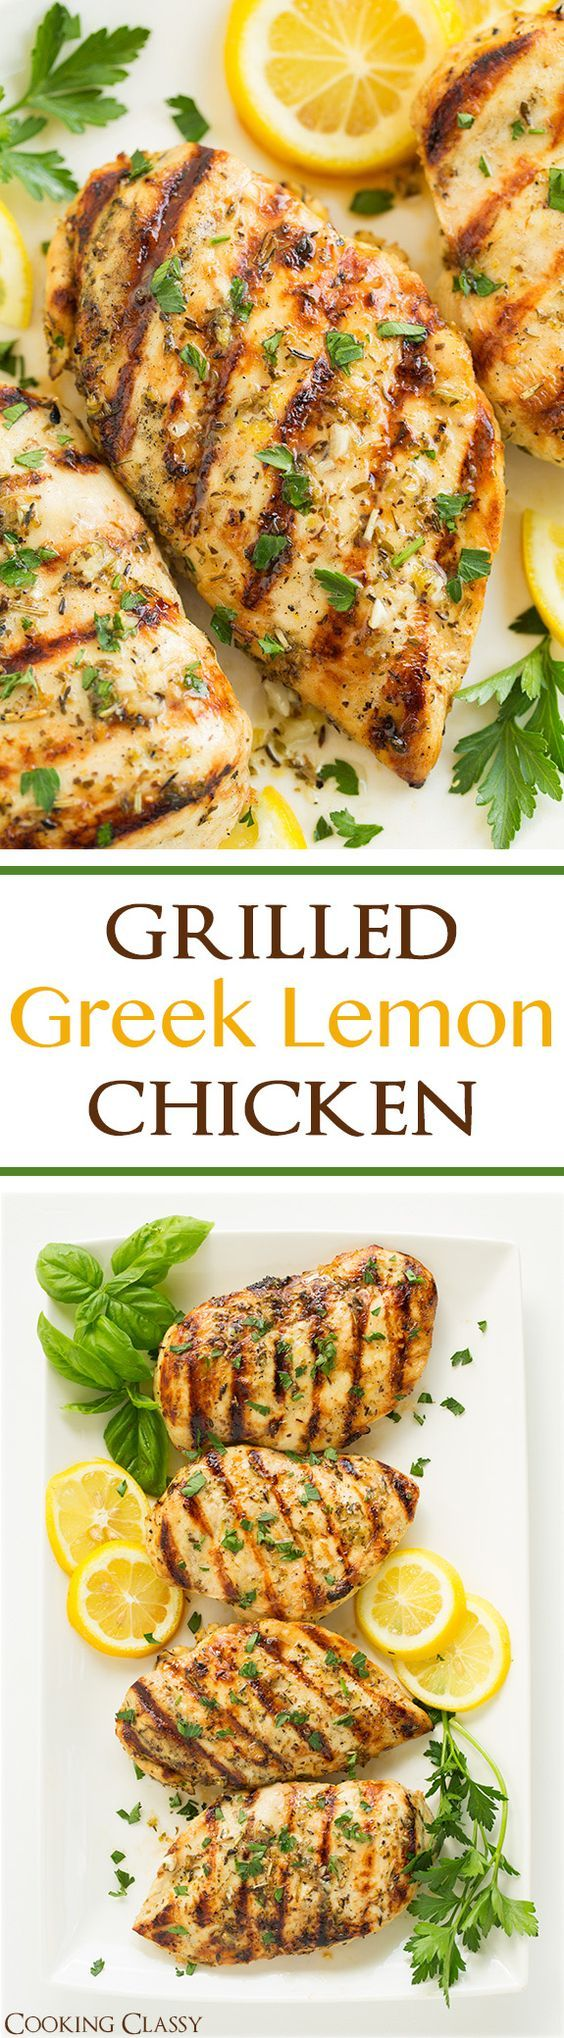 Grilled Greek Lemon Chicken - this chicken is so easy to prepare and it's…